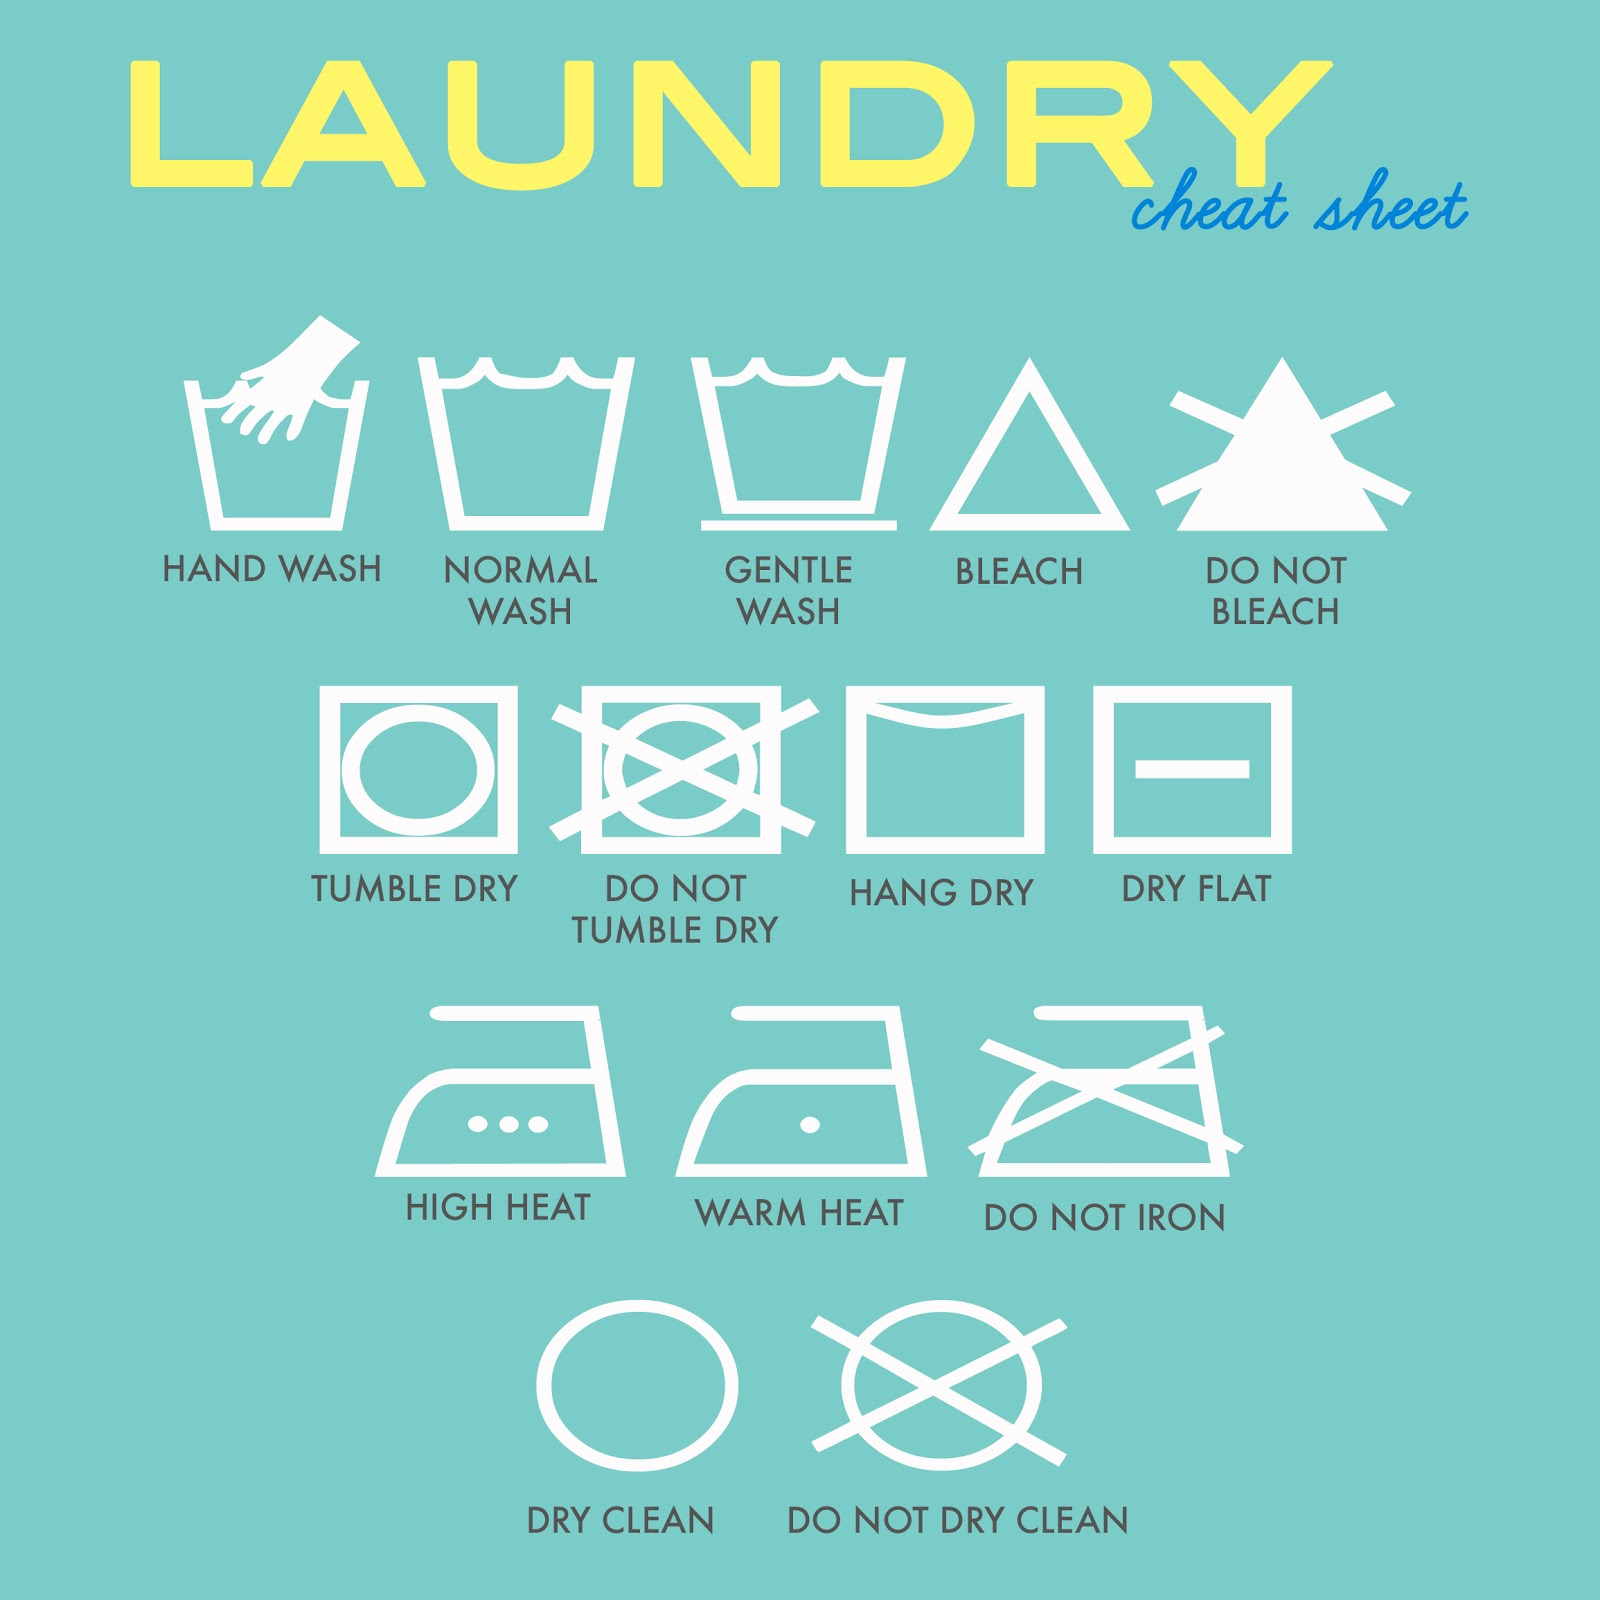 Download laundry symbol art rambling renovators im always forgetting what the laundry symbols mean so this is a fun little way to remember them buycottarizona